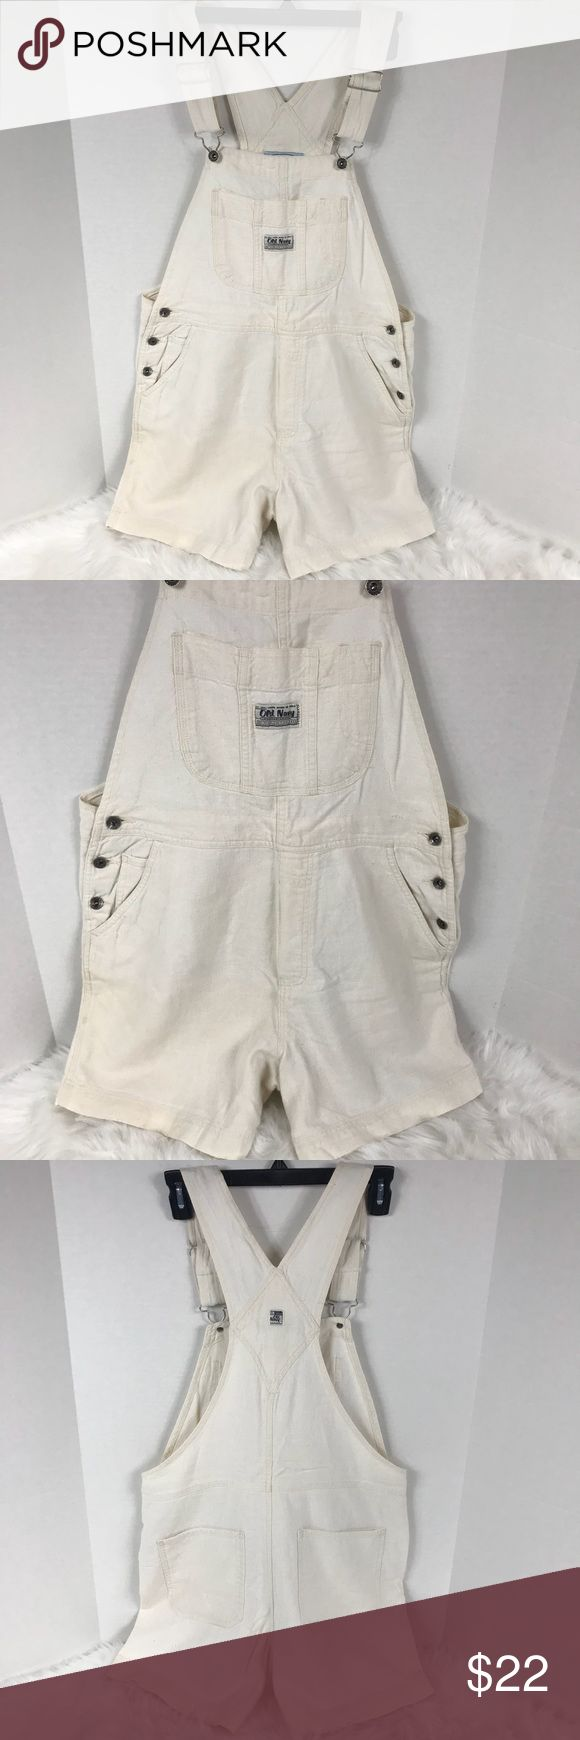 Old Navy Bib Romper Shortalls Overall Shorts Med OLD NAVY Linen Cotton Bib Romper Shortalls Khaki Beige Tan Shorts Women's Medium GUC Vtg Vintage 90s 80s 70s 60s 50s 40s  No tears, no flaws. Smoke-free home.  Perfect overall shorts at a great price. Why pay high retail department store prices for brand names? Check out my closet for more great deals.  Flat lay measurements in inches:  Waist: 17.5 Inseam: 5 Rise: 12 Old Navy Jeans Overalls